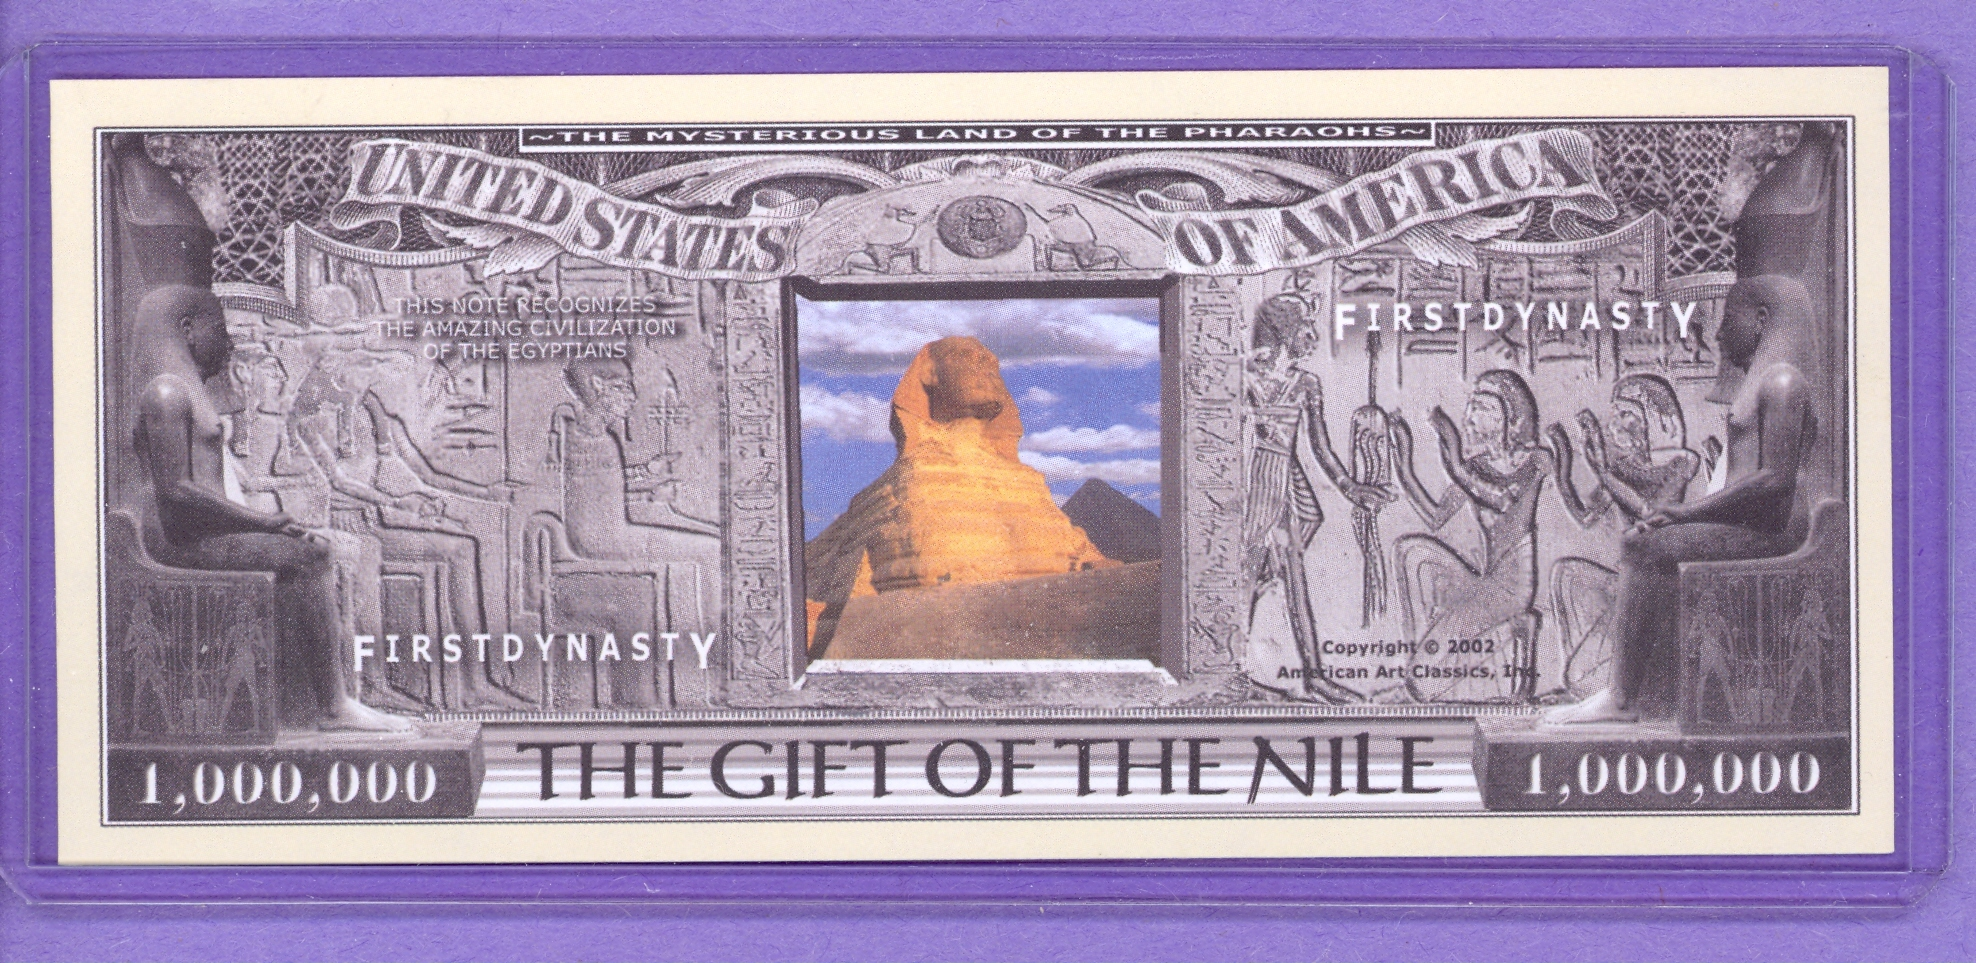 Gift of the Nile Fantasy Note